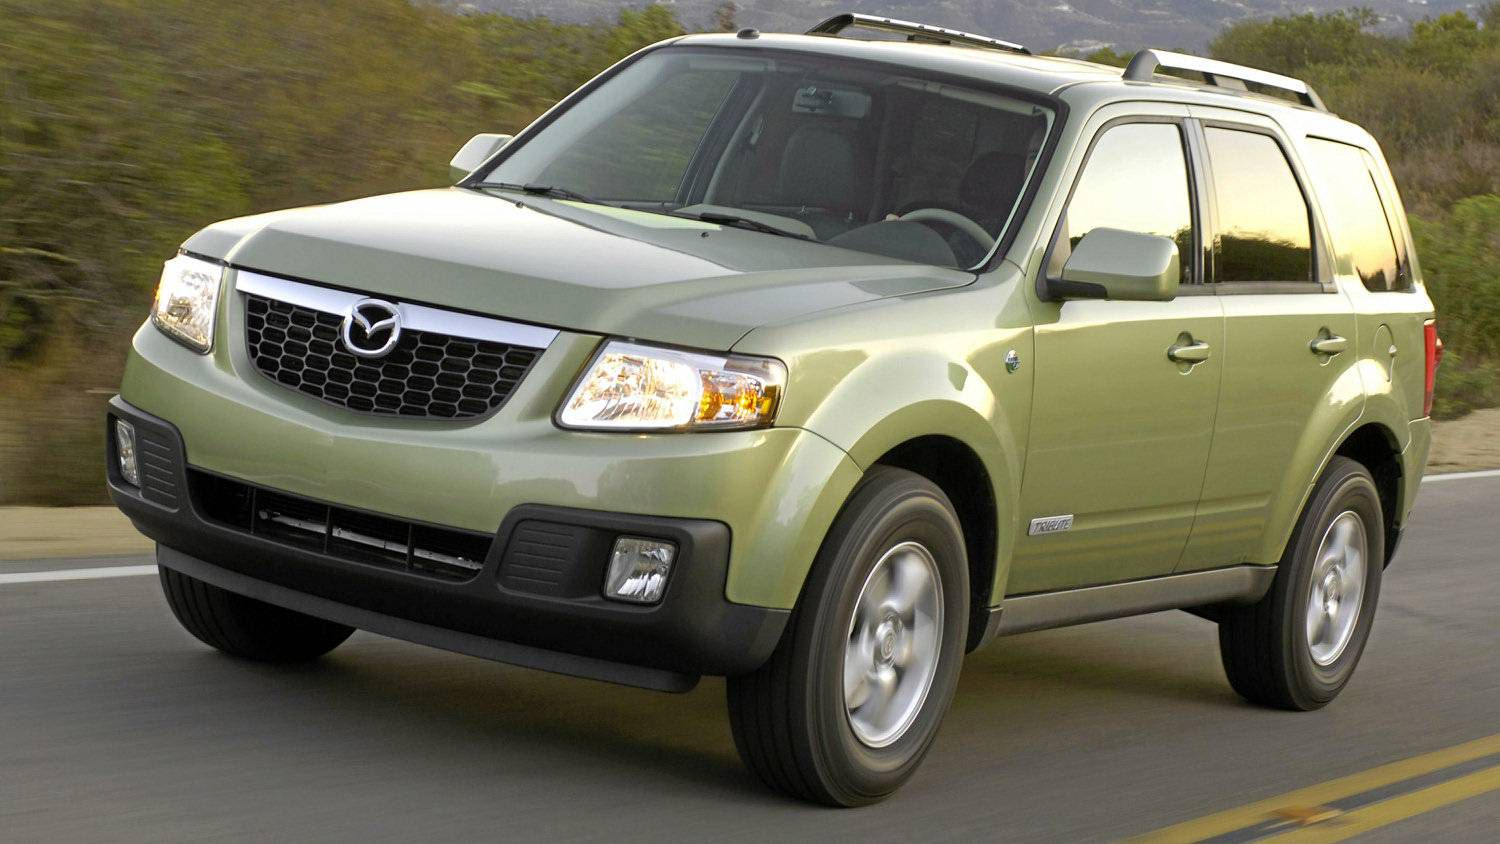 2009 Mazda Tribute Is Less Than Flattering The Globe And Mail 6 Fuel Filter